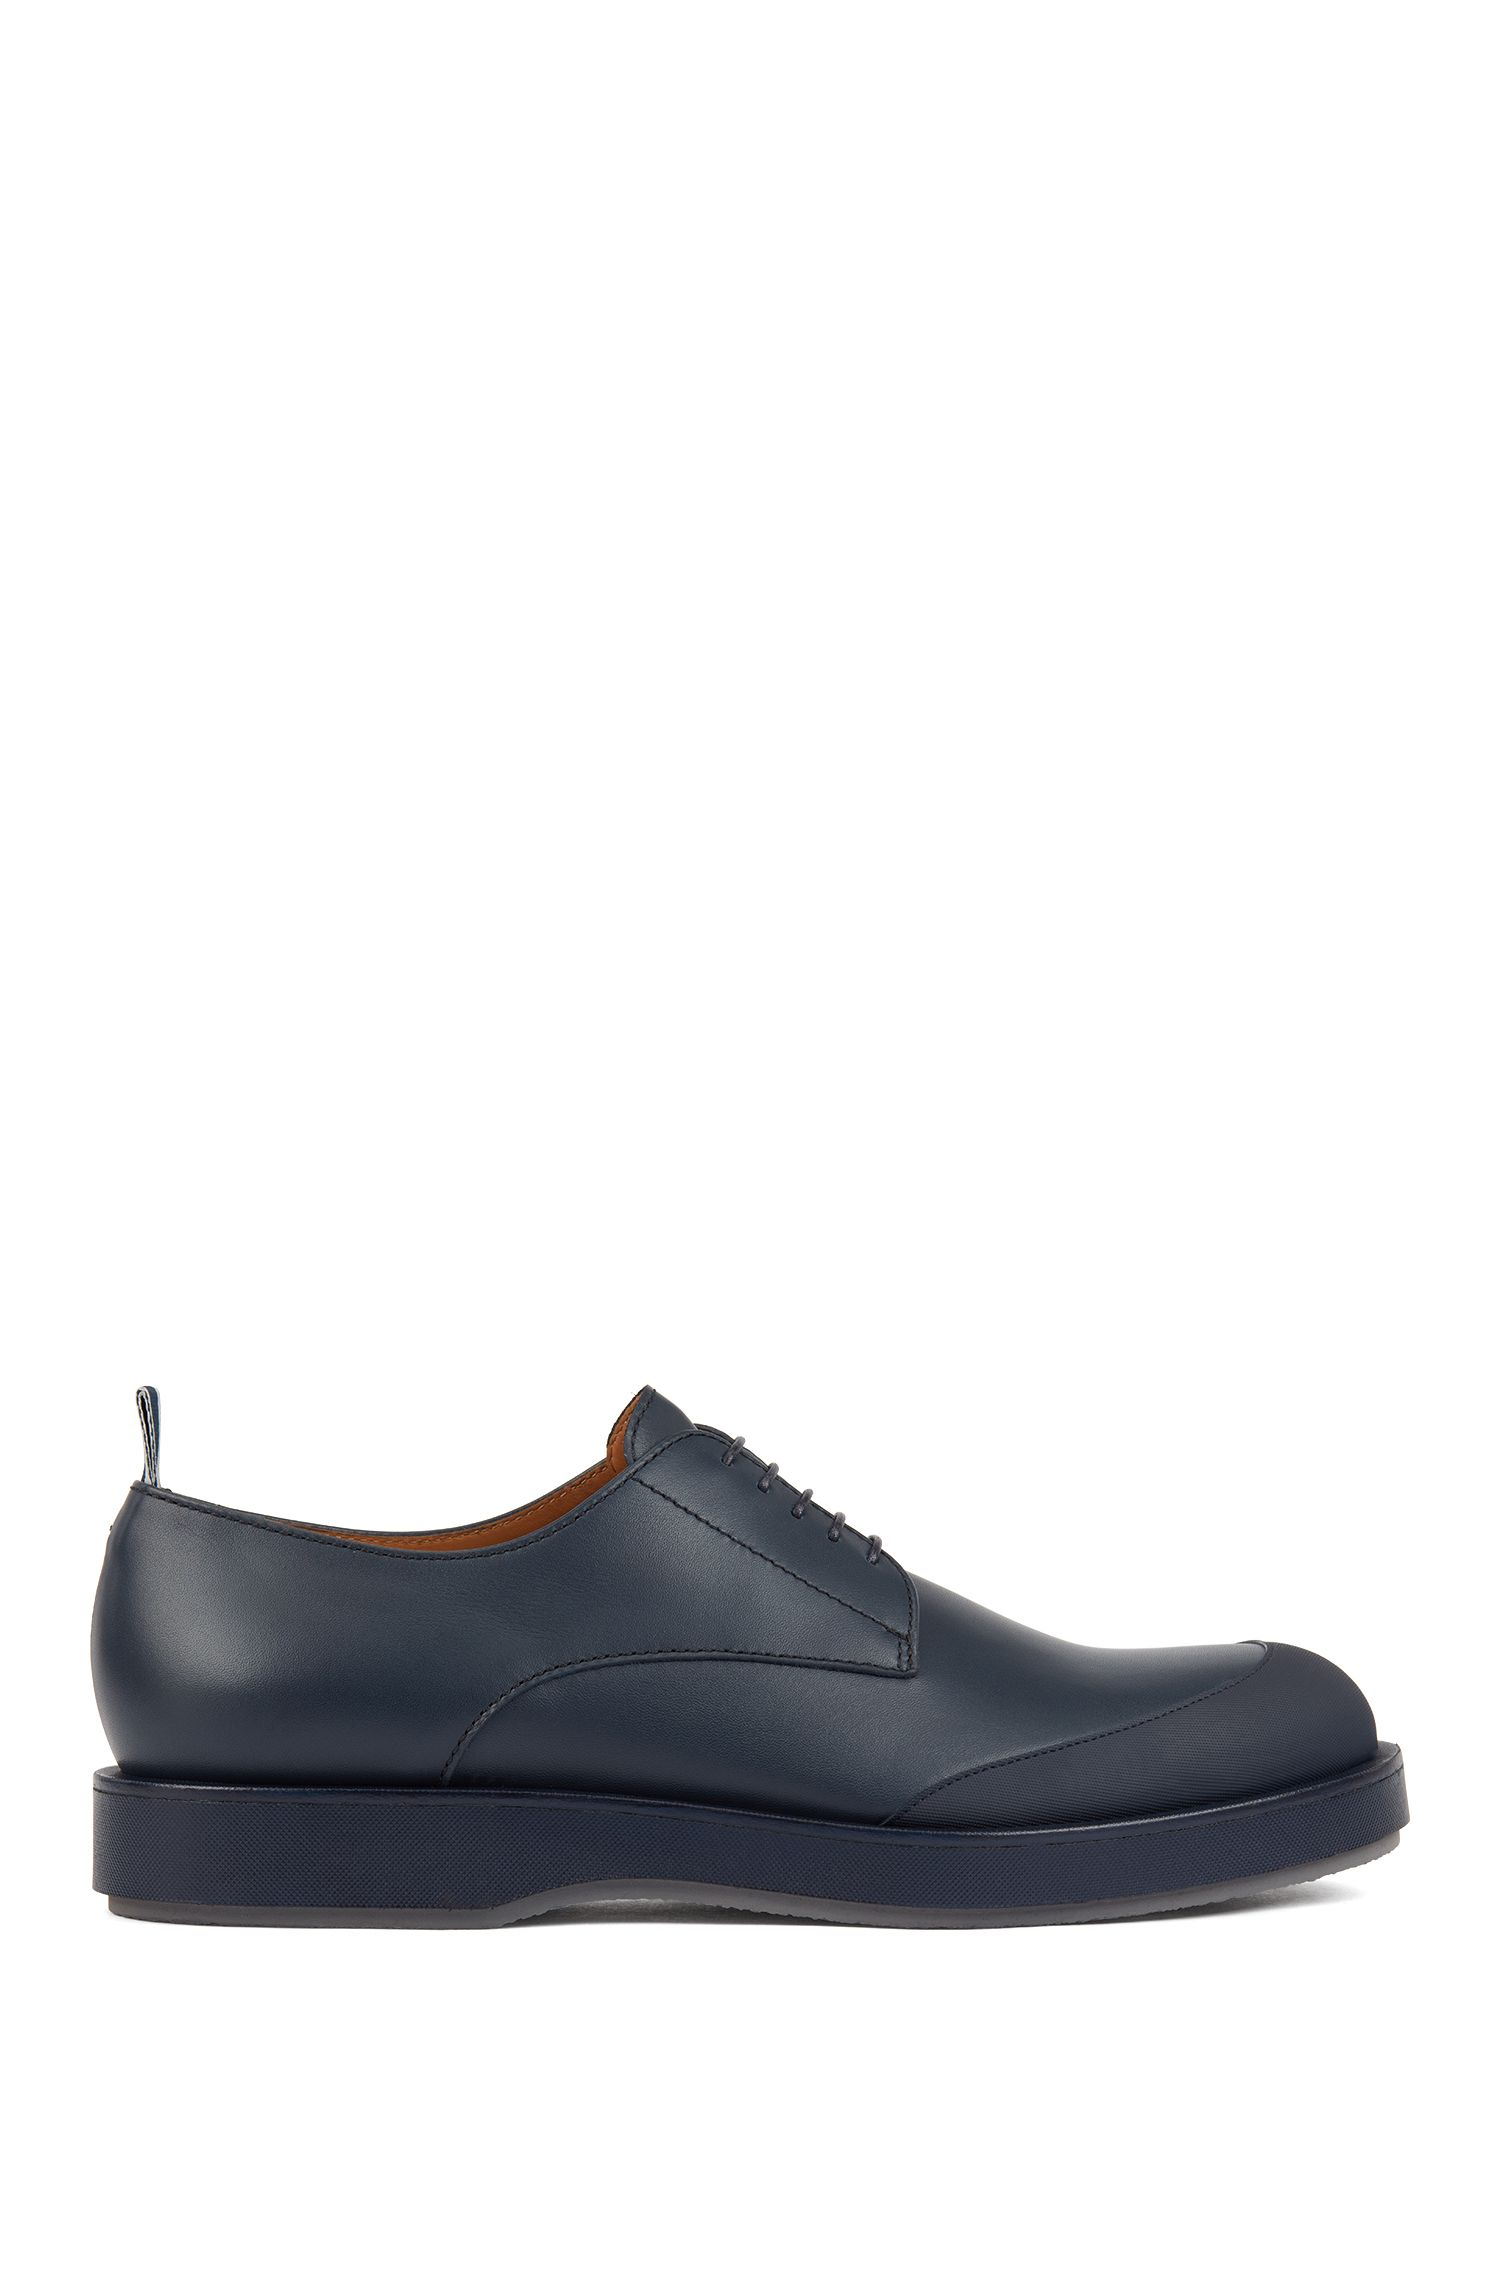 Derby shoes in polished leather with EVA-rubber outsole, Dunkelblau